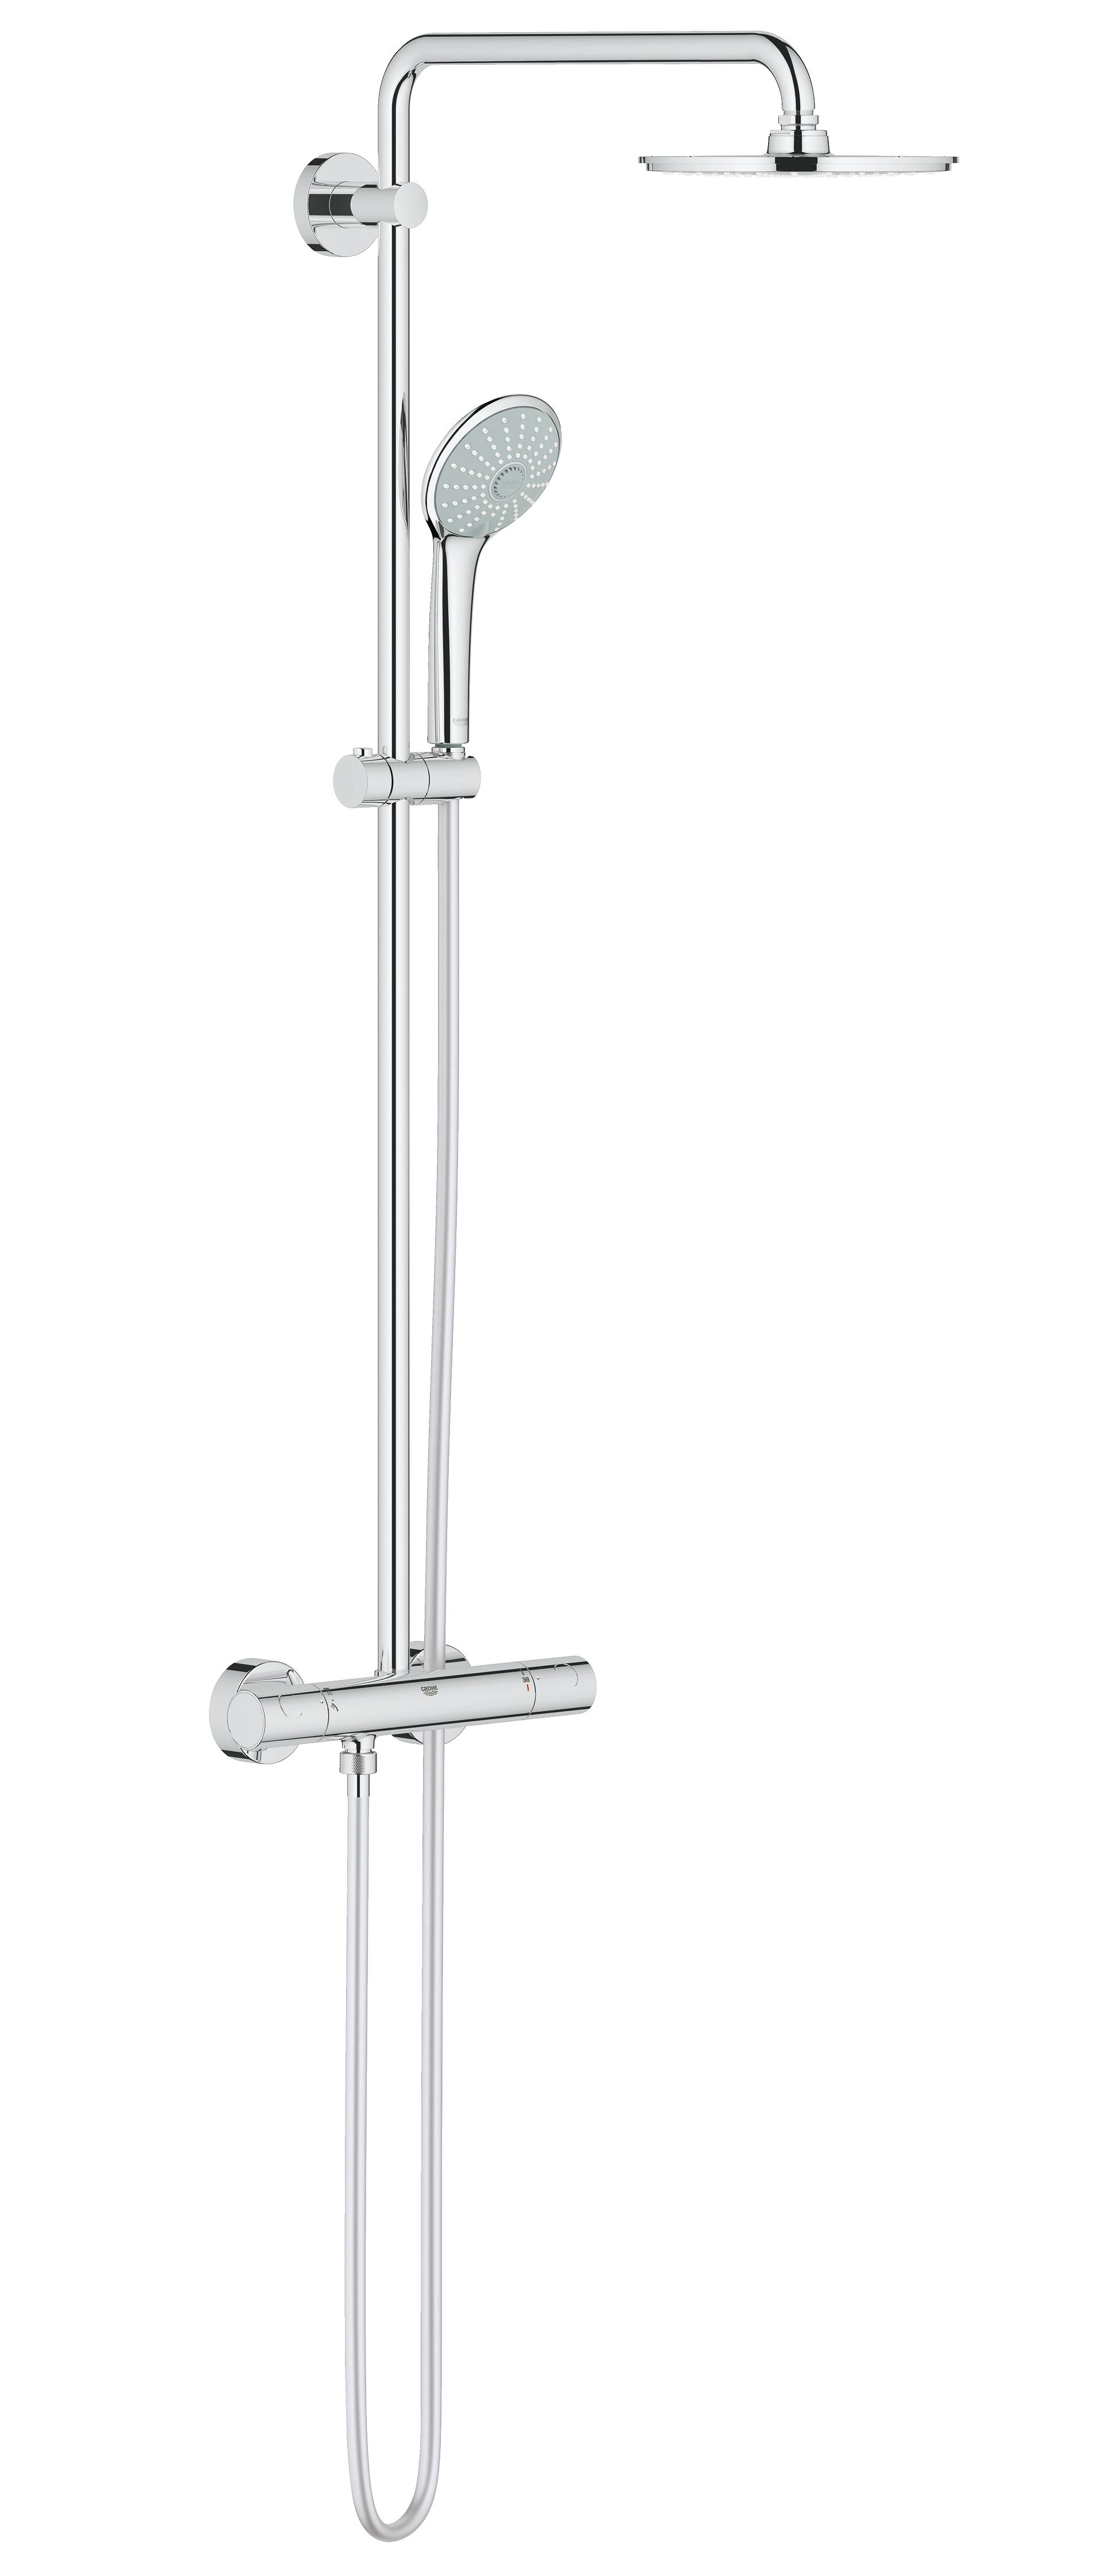 ������� ������� Grohe 27964000